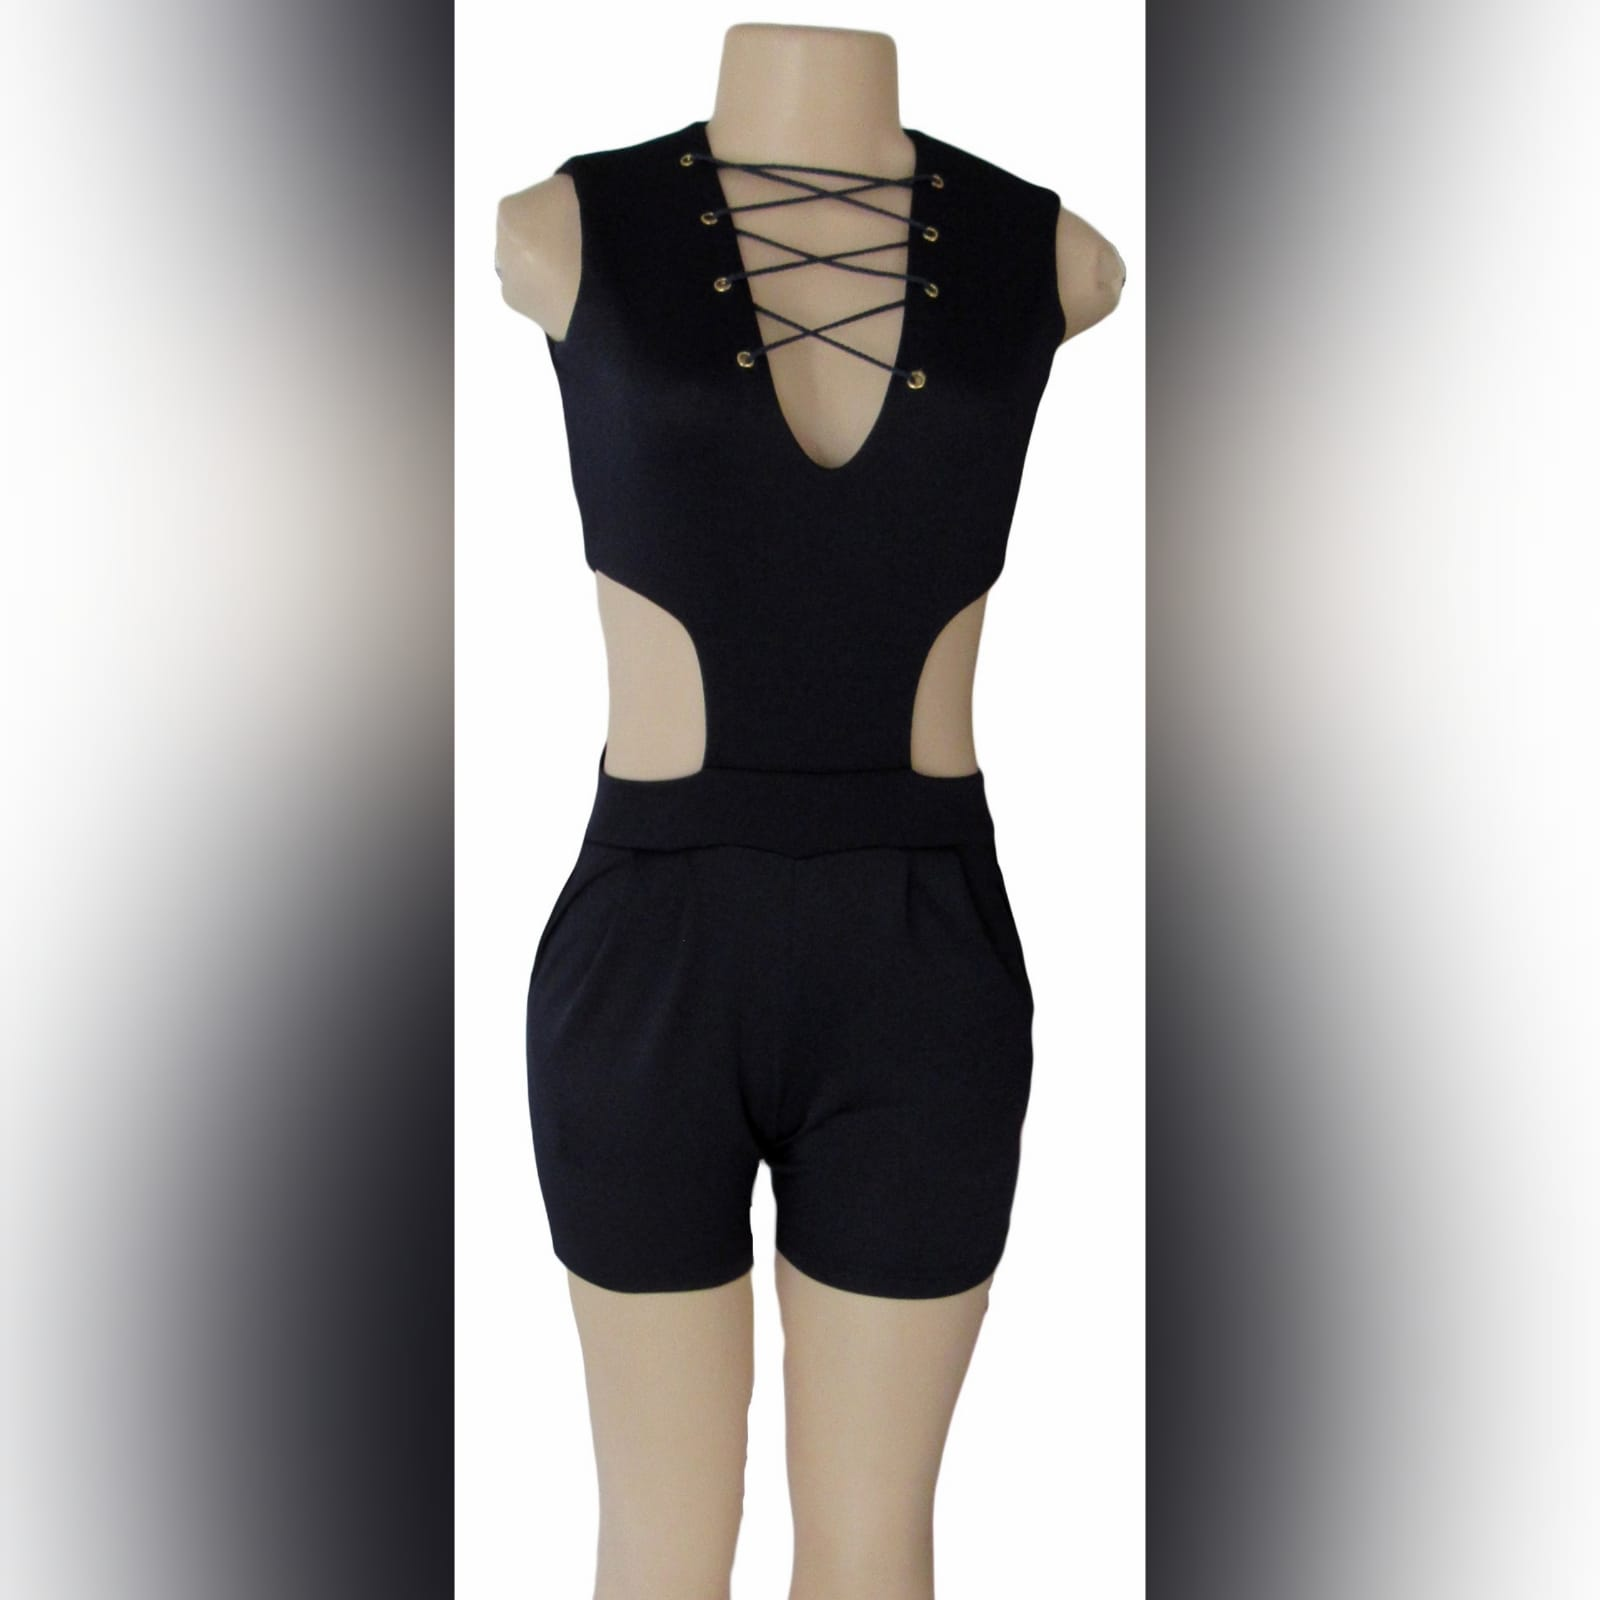 Navy blue smart casual bodysuit 5 navy blue smart casual bodysuit, with side tummy openings, v neckline detailed with lace-up detail, and back with a gold zipper.